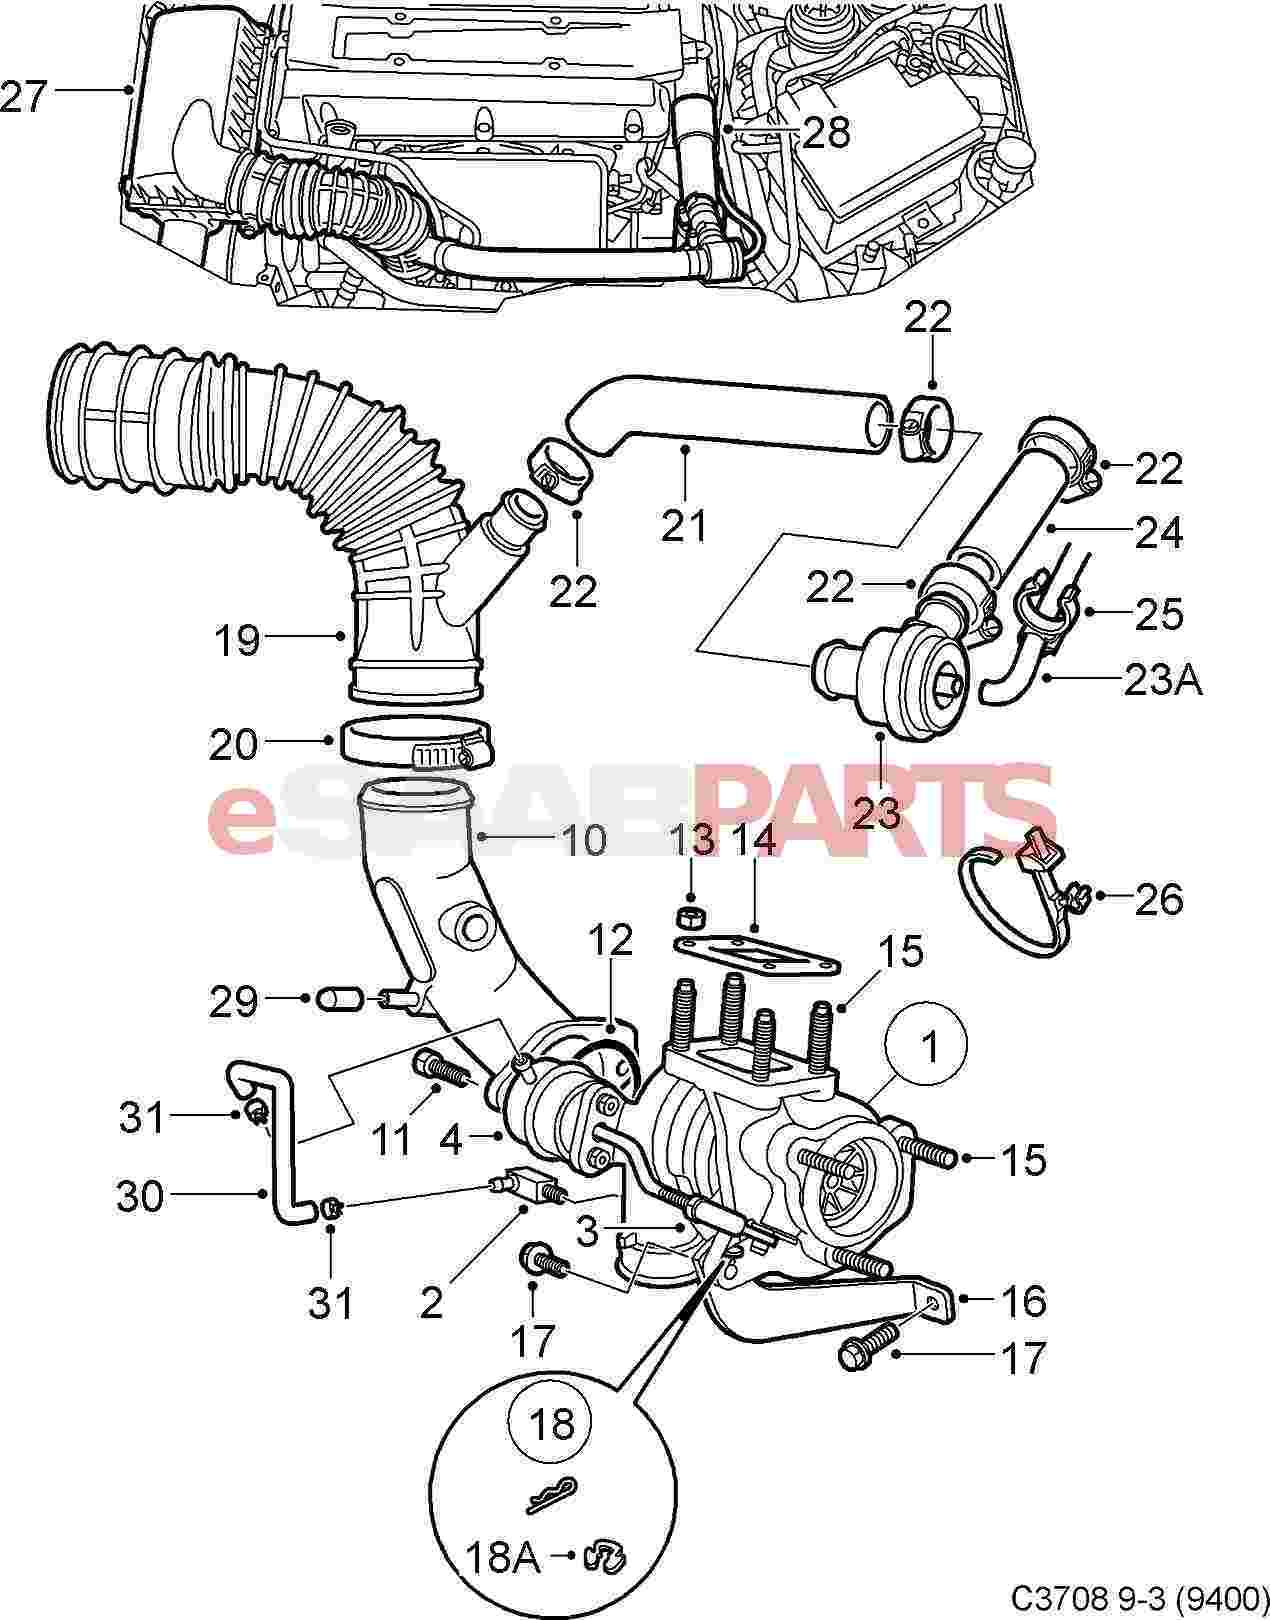 4441895 saab charge air bypass valve genuine saab parts from diagram image 23